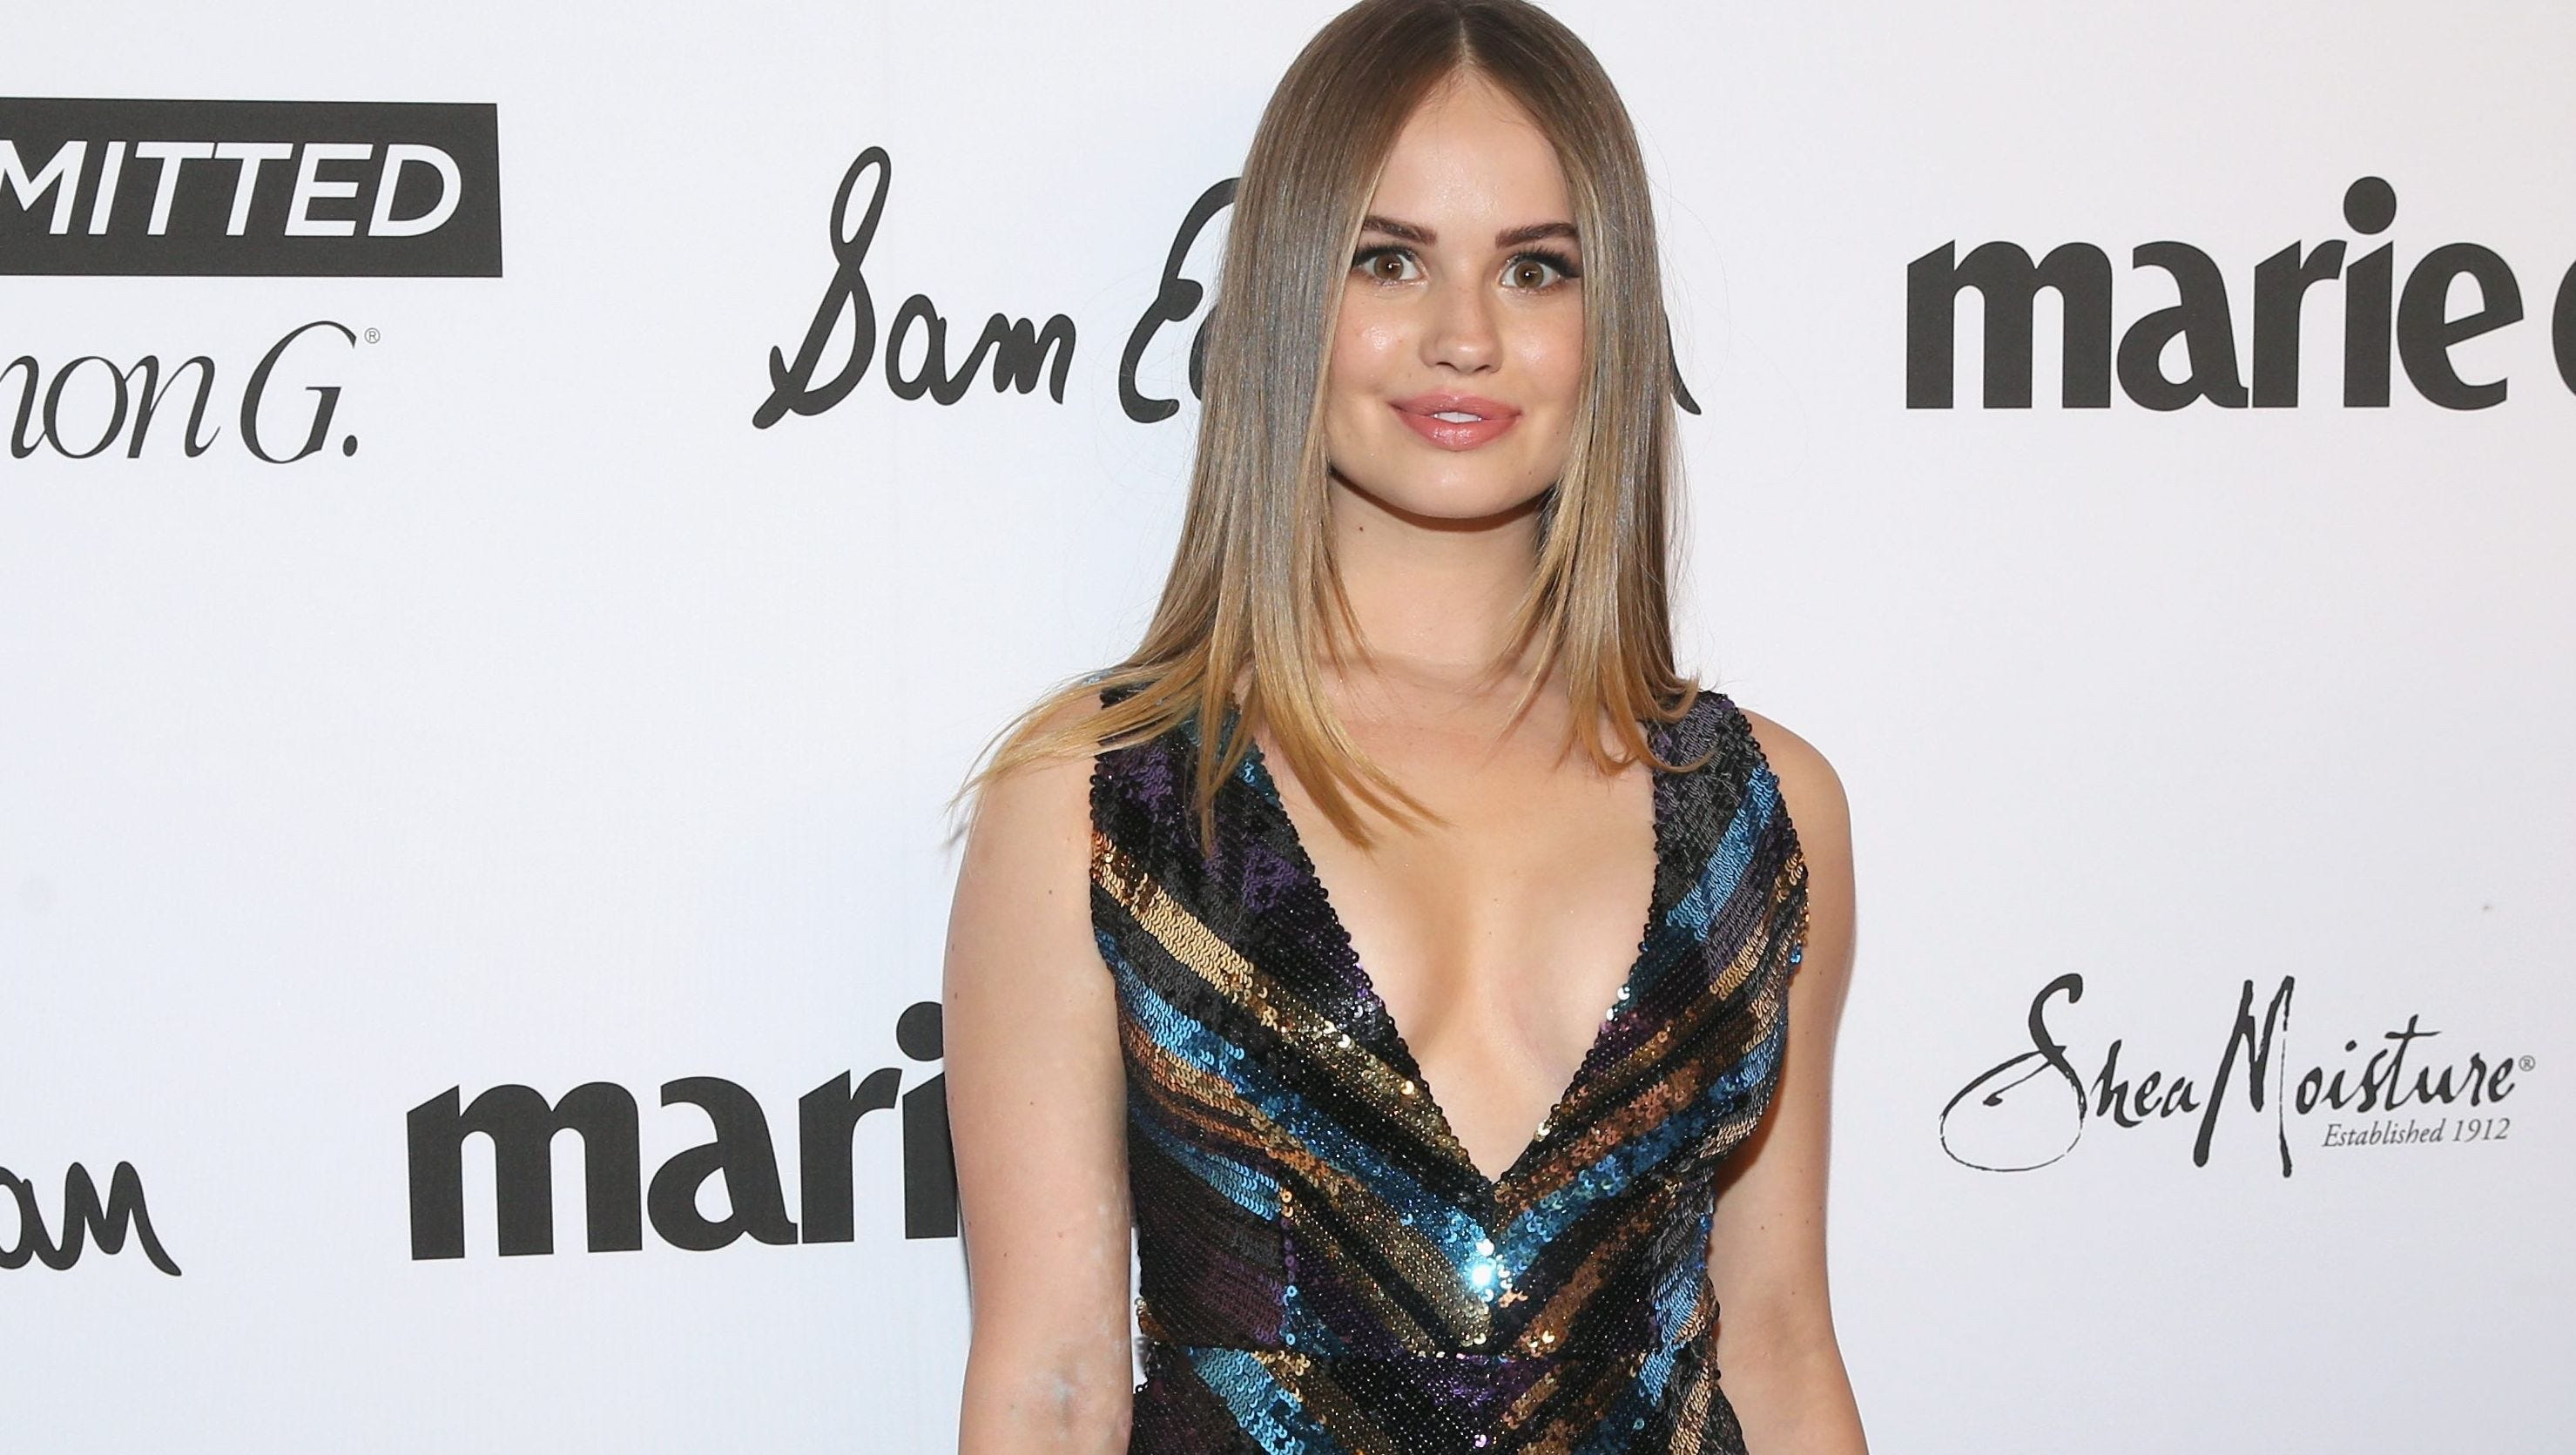 How Much Is Debby Ryan's Instagram Worth? - TNWTL MOVEMENT